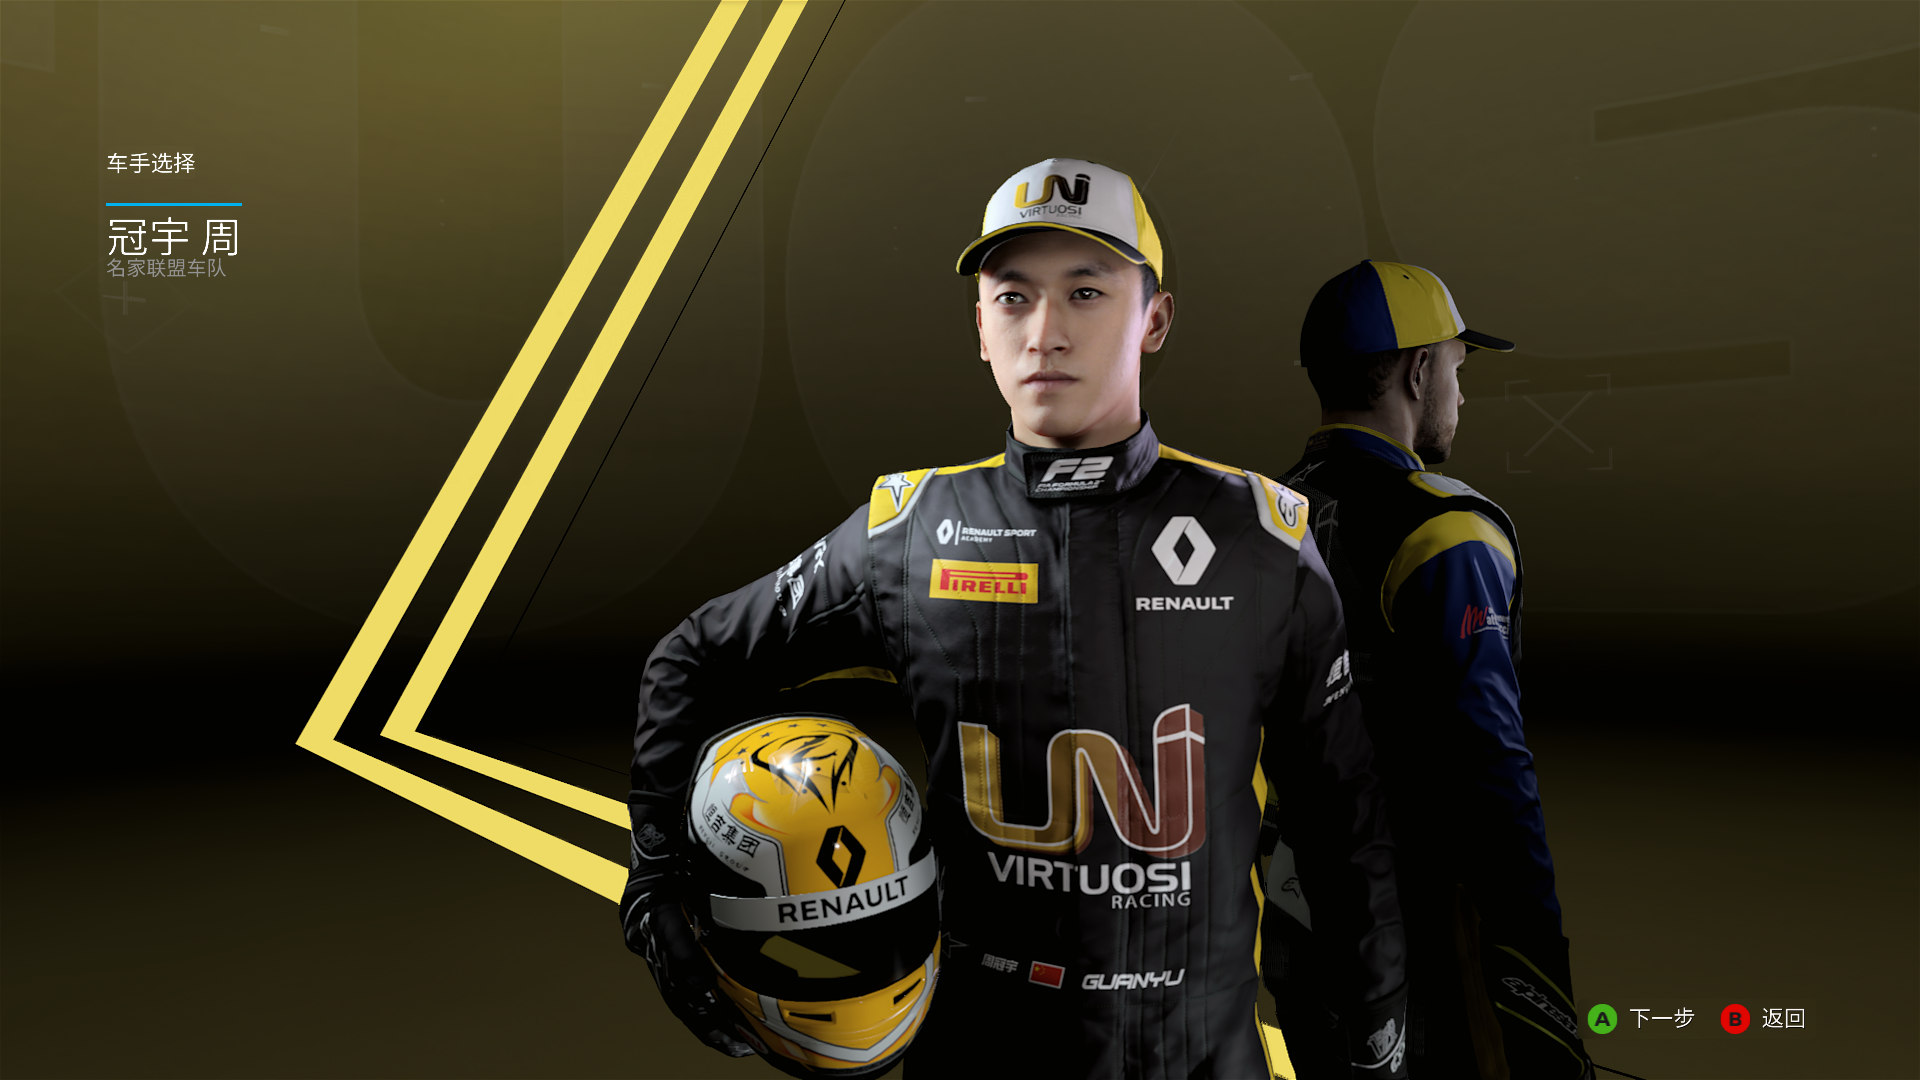 F1_2020_dx12 2021-01-29 17-59-03.png